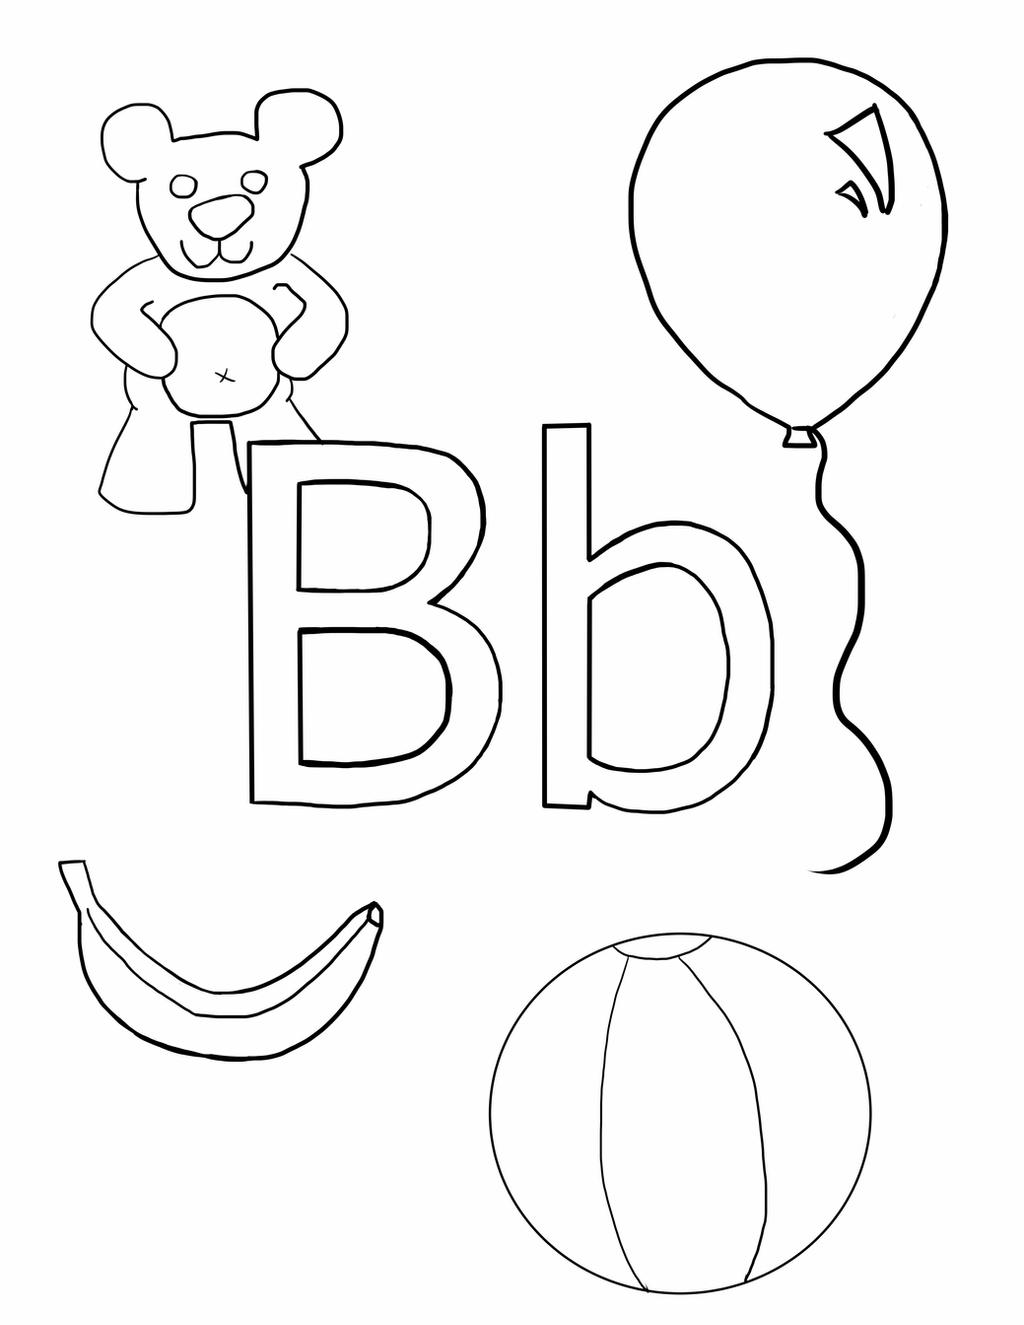 letter b coloring sheet letter b is for baby coloring page free printable b coloring letter sheet